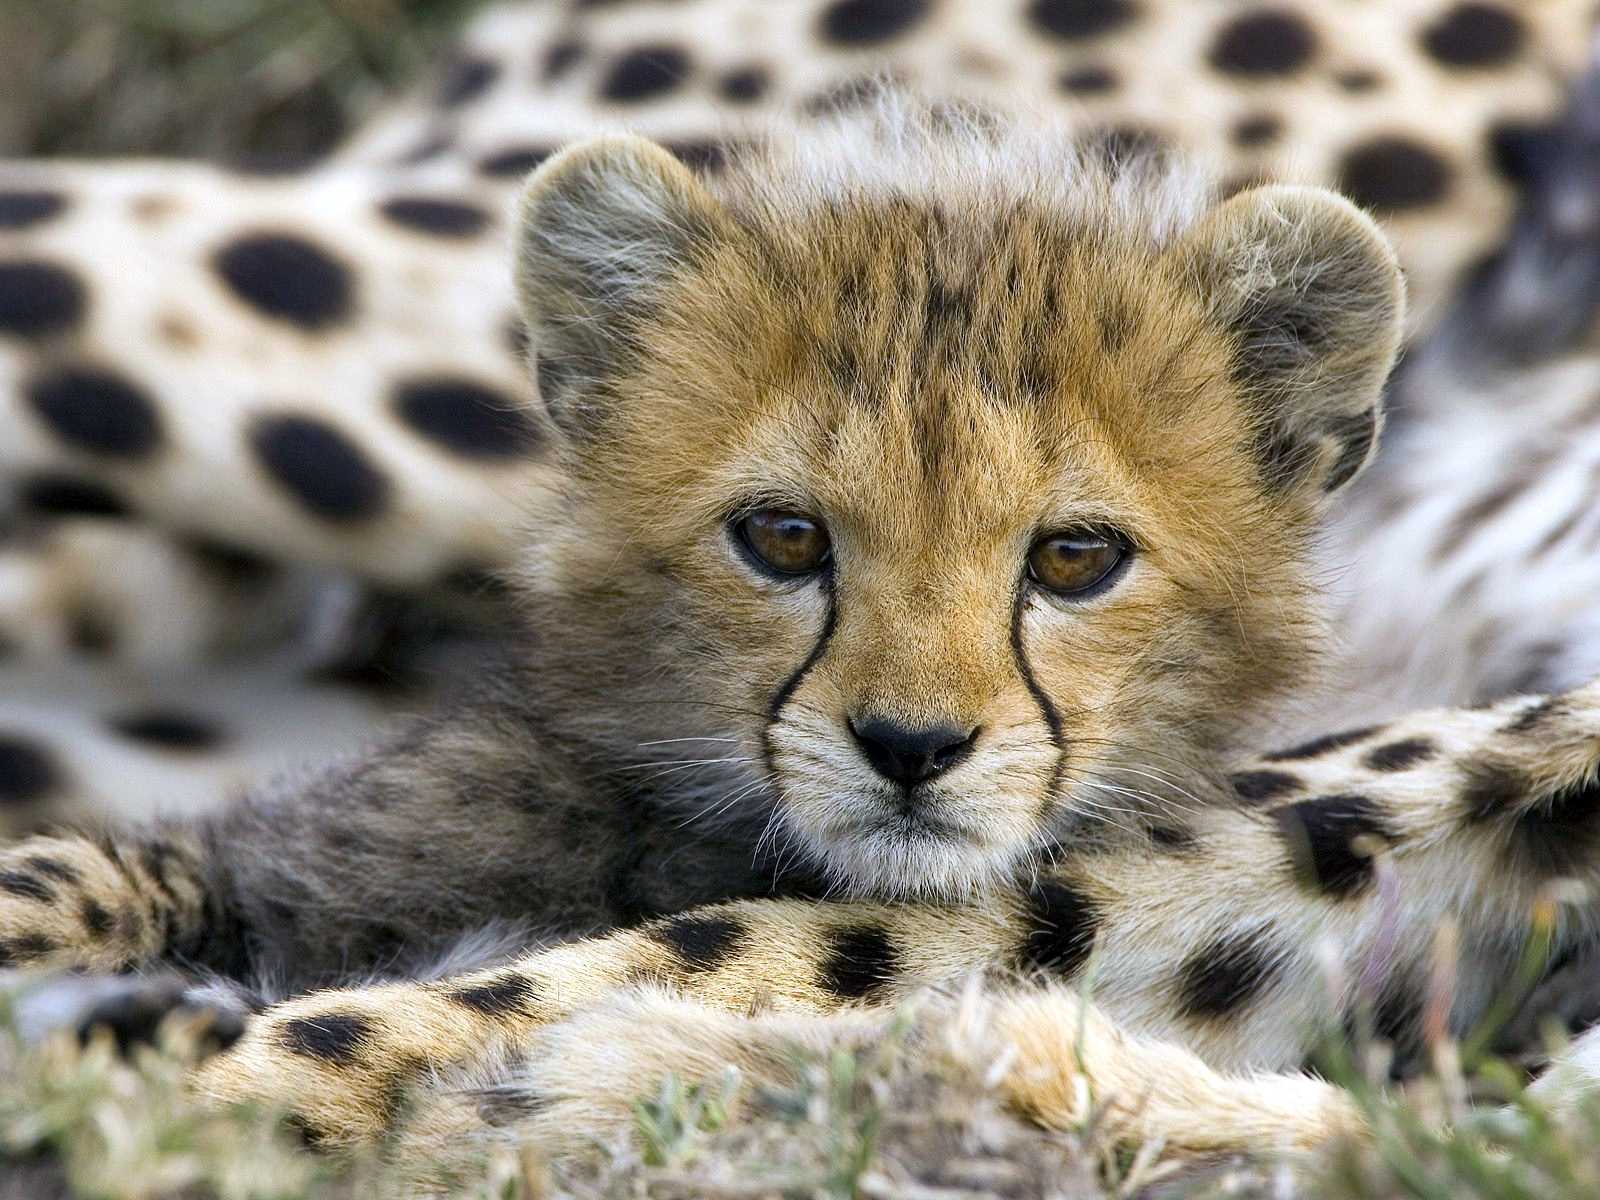 the cheetah is an endangered species Encroaching human populations are the biggest threat to the vulnerable cheetah help with wildlife conservation and ensure this species does not become endangered.